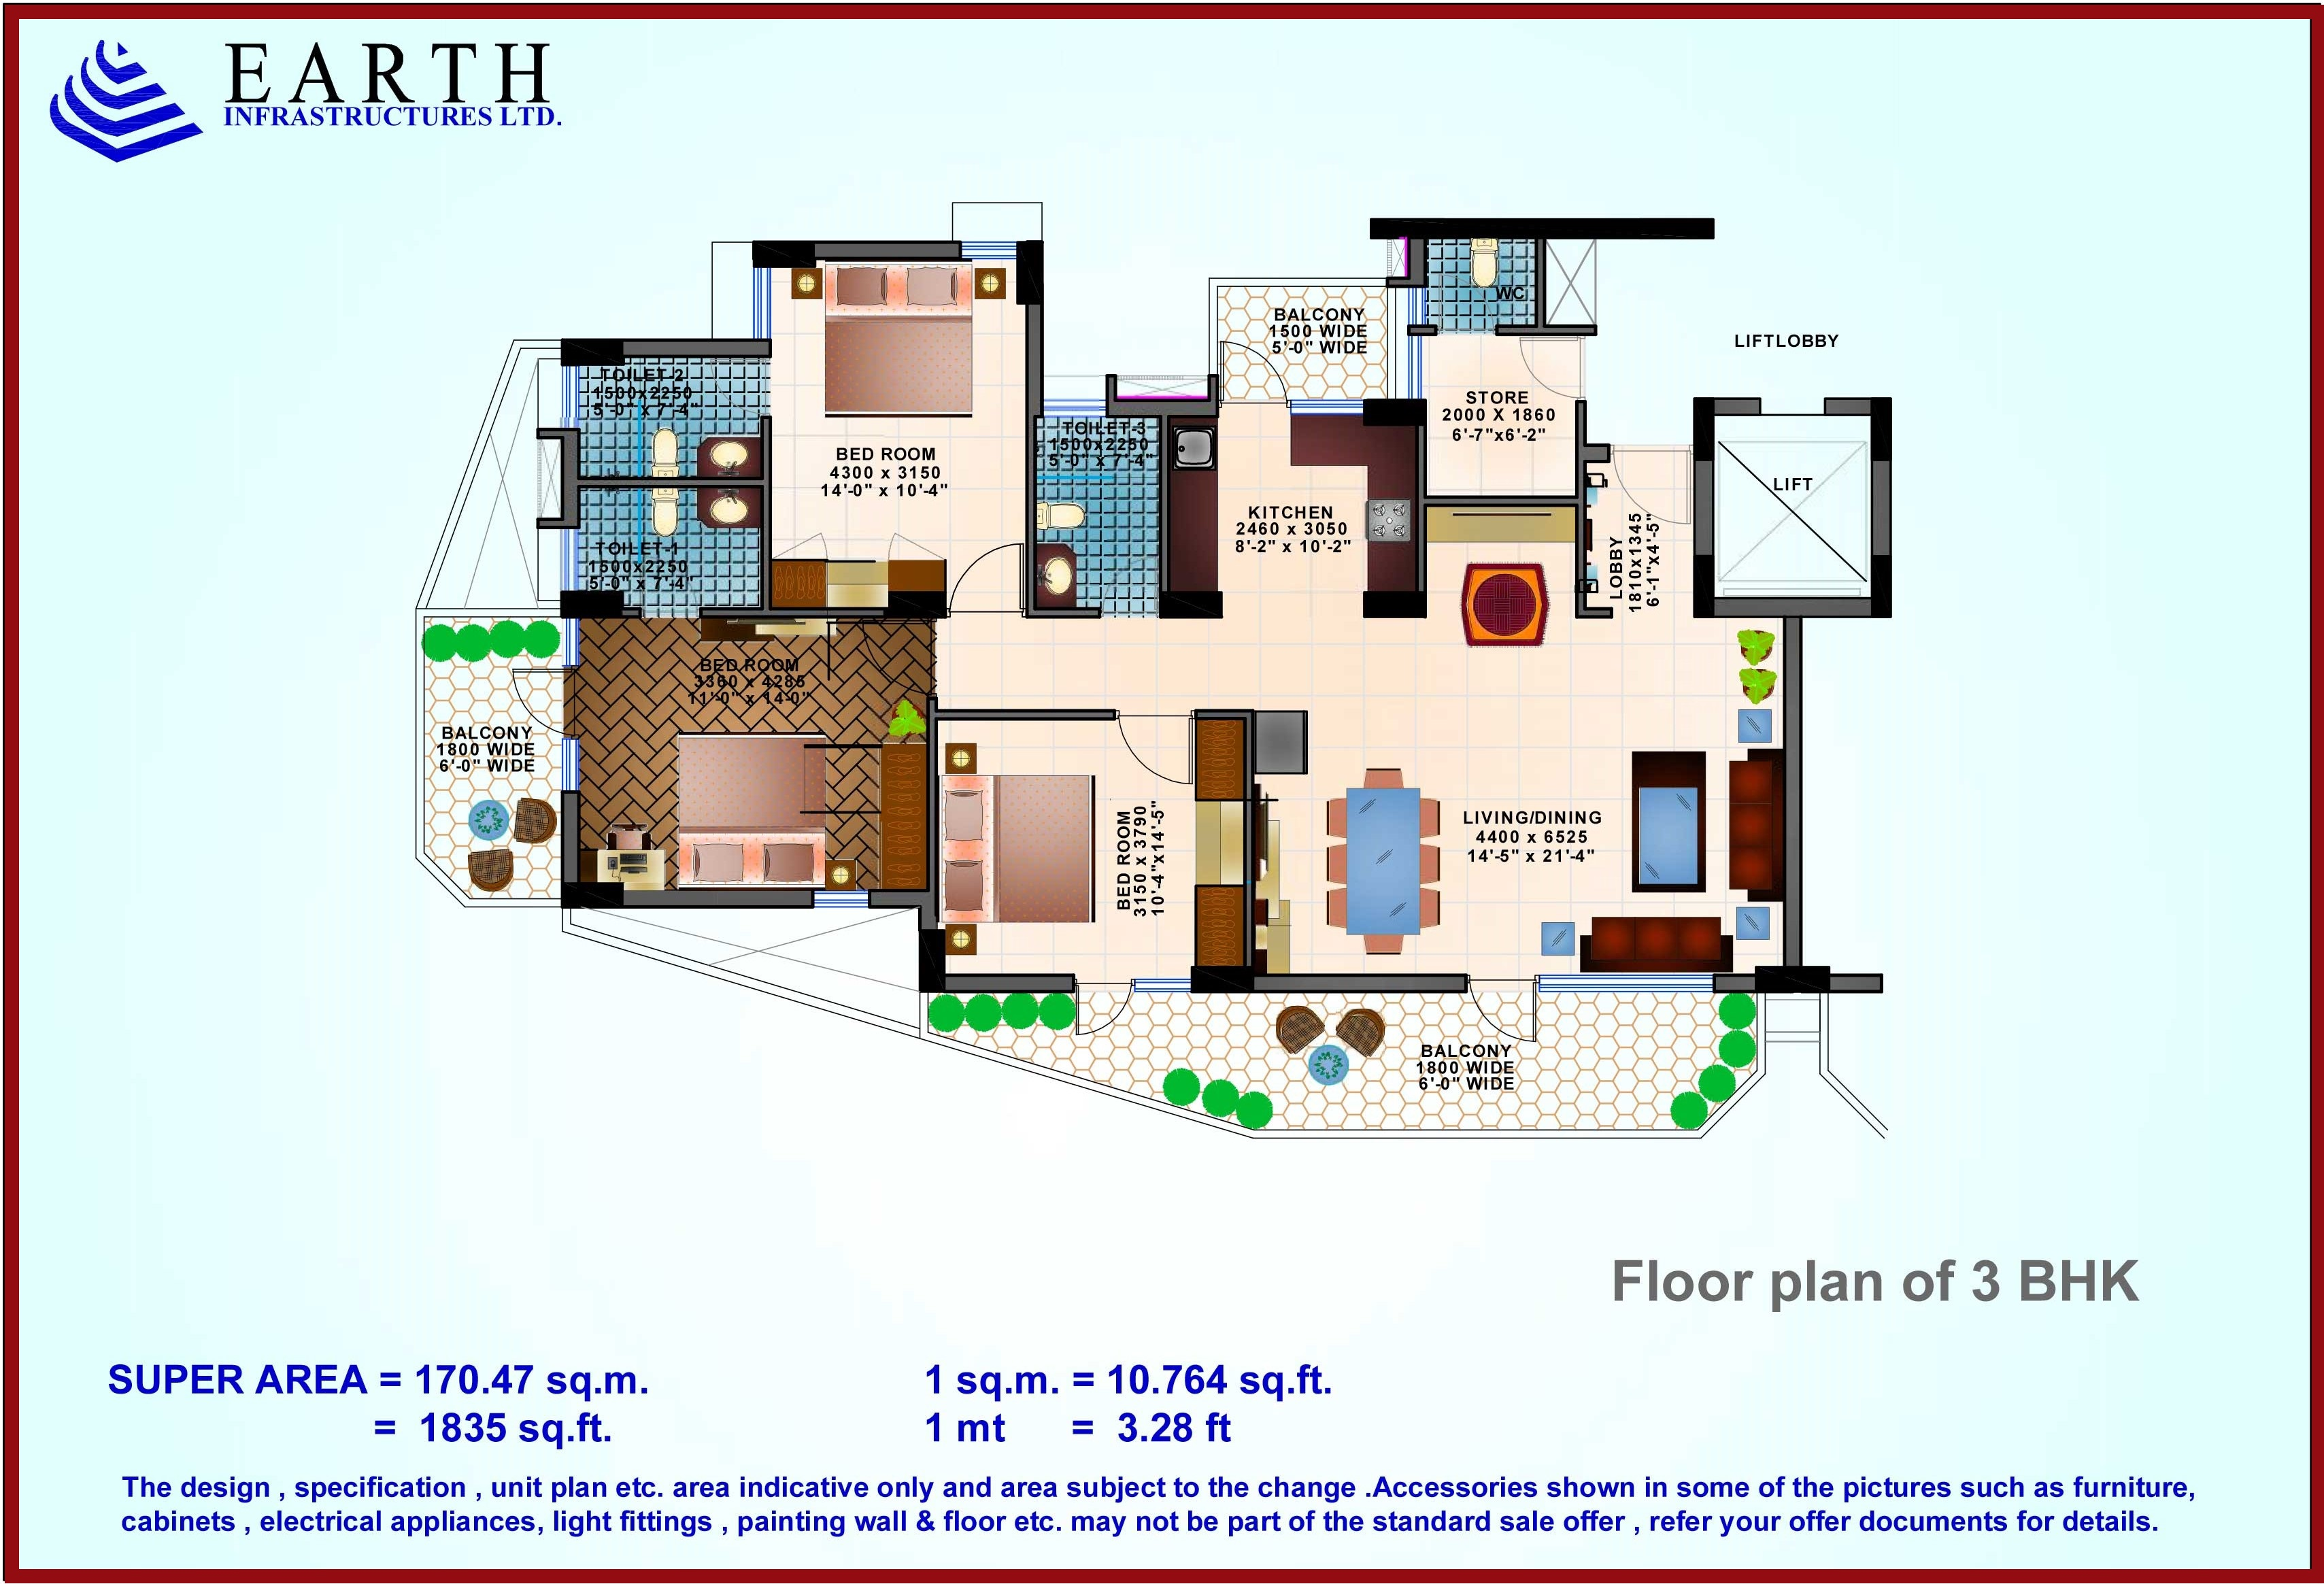 3 BHK Floor Plan of Earth Sector 112